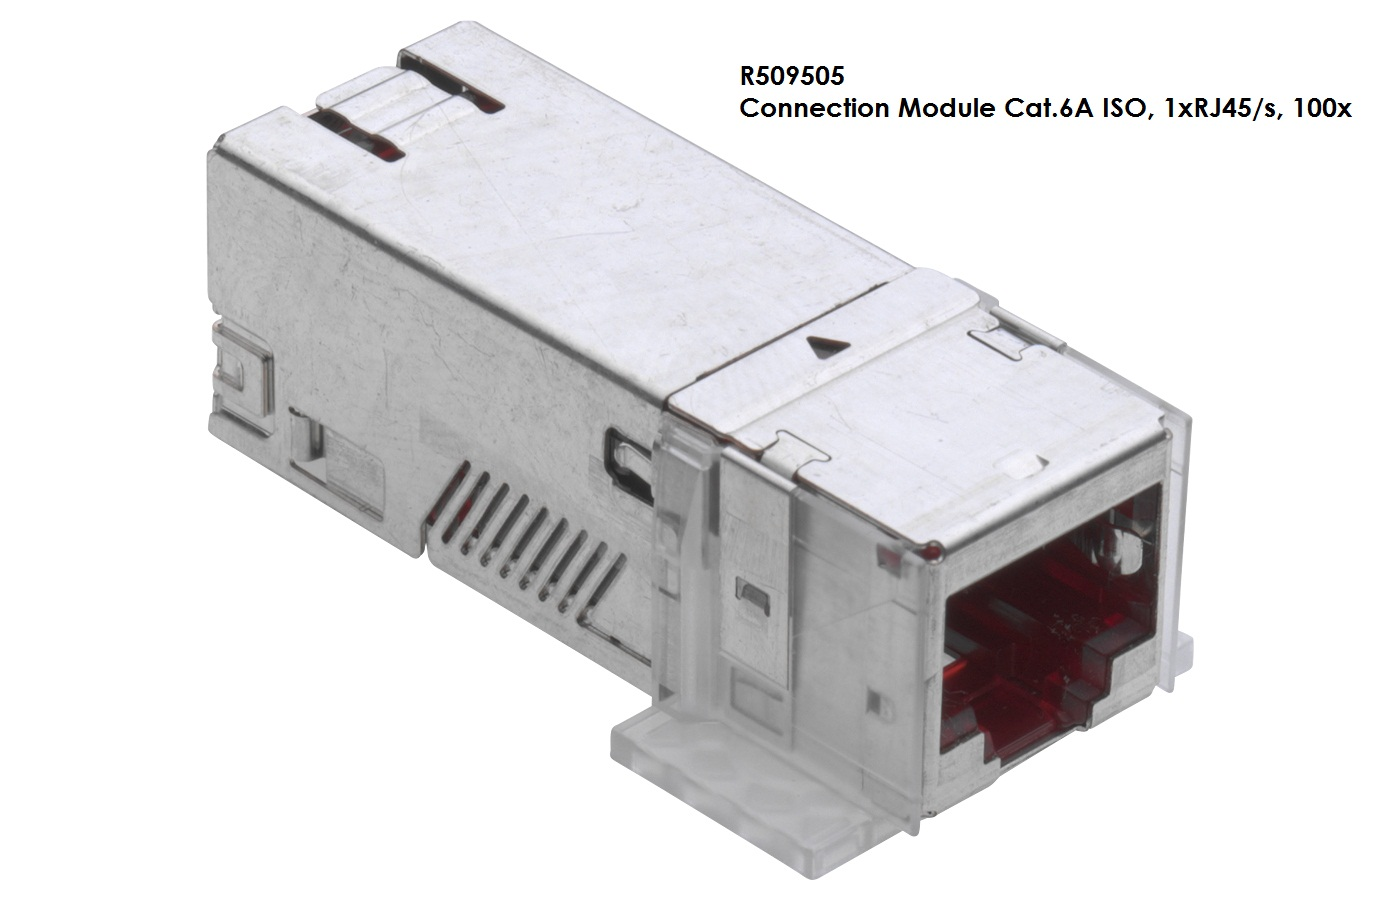 Connection Module Cat6a Iso 1xrj45 S 100x Pt Anugerah Maju Bersama Rj45 Shielded Wiring Diagram 1 X Of For The Setting Up Transmission Channels Class Ea With To